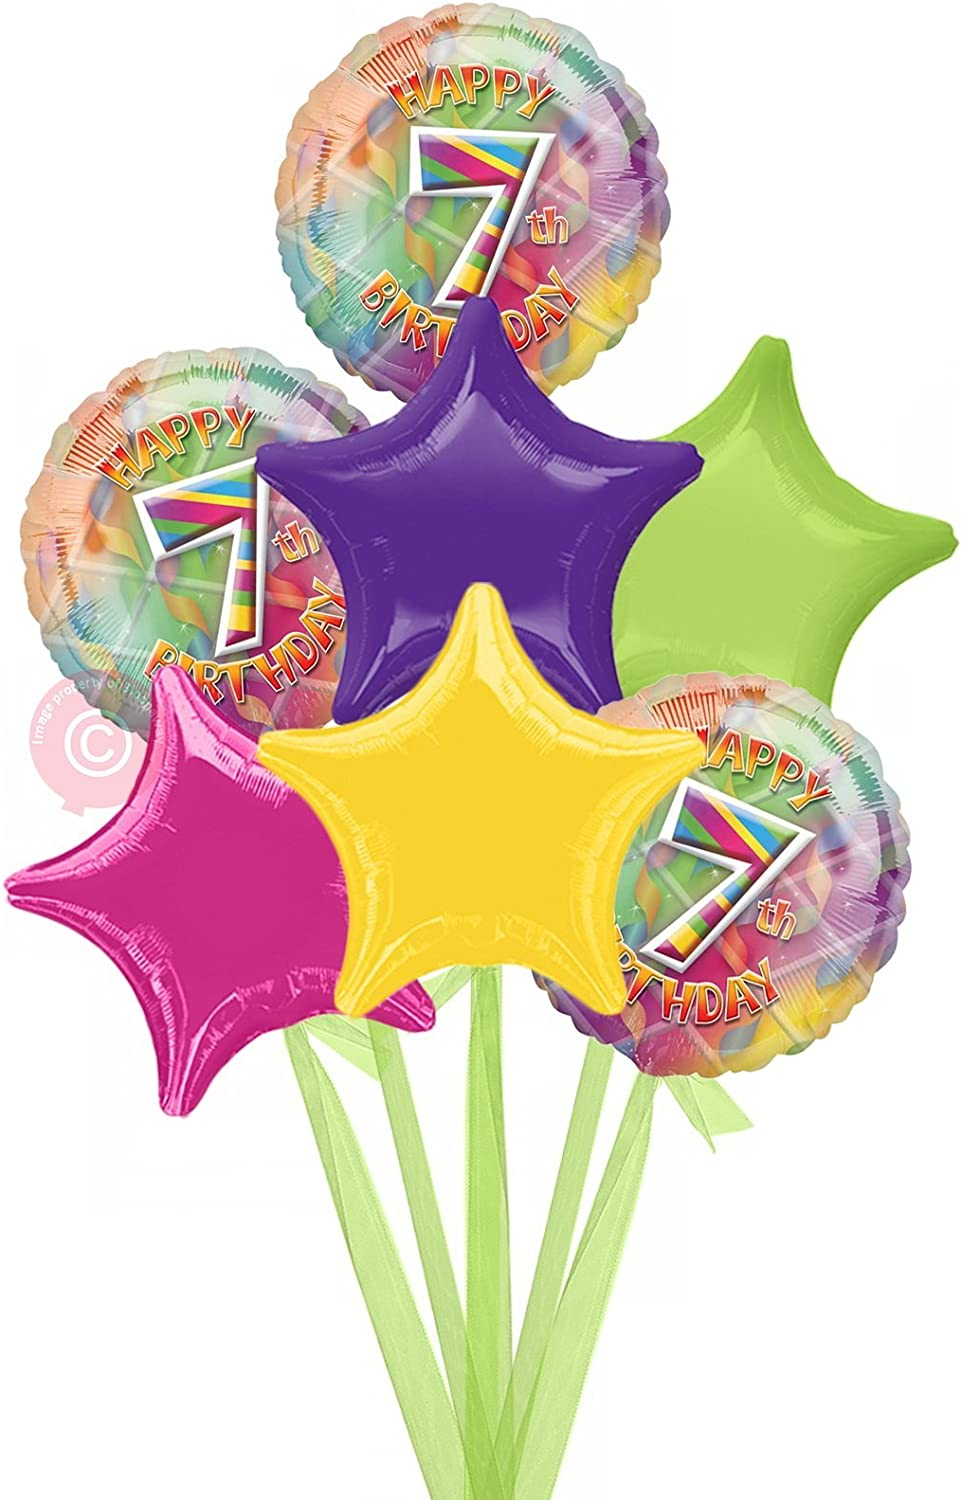 No 7 Happy 7th Birthday Girl  Inflated Birthday Helium Balloon Delivered in a Box  Bigger Bouquet  7 Balloons  Bloonaway